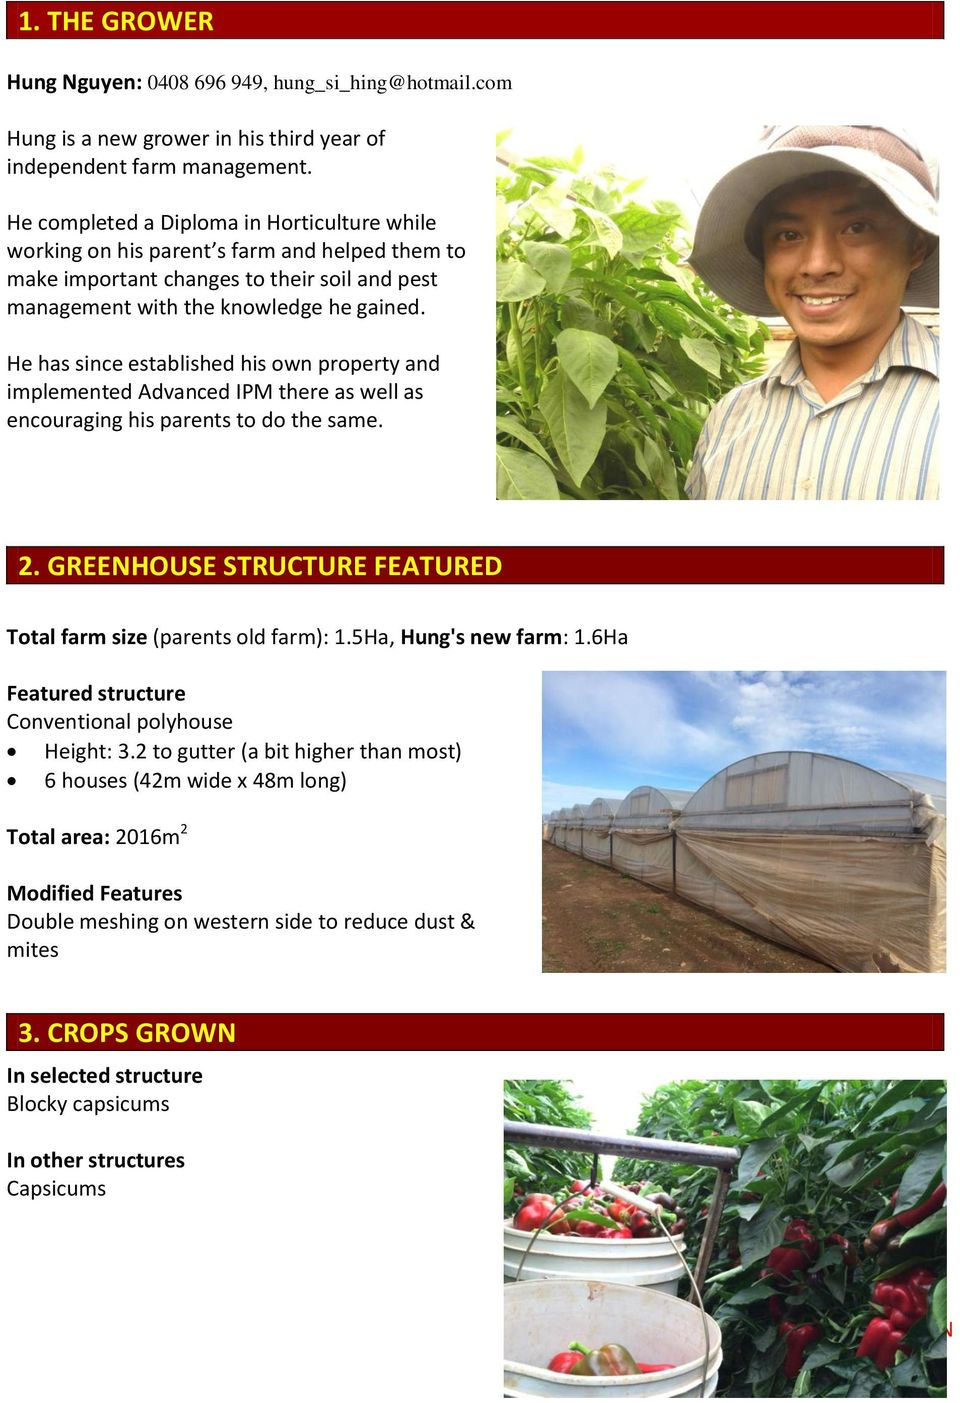 He has since established his own property and implemented Advanced IPM there as well as encouraging his parents to do the same. 2. GREENHOUSE STRUCTURE FEATURED Total farm size (parents old farm): 1.